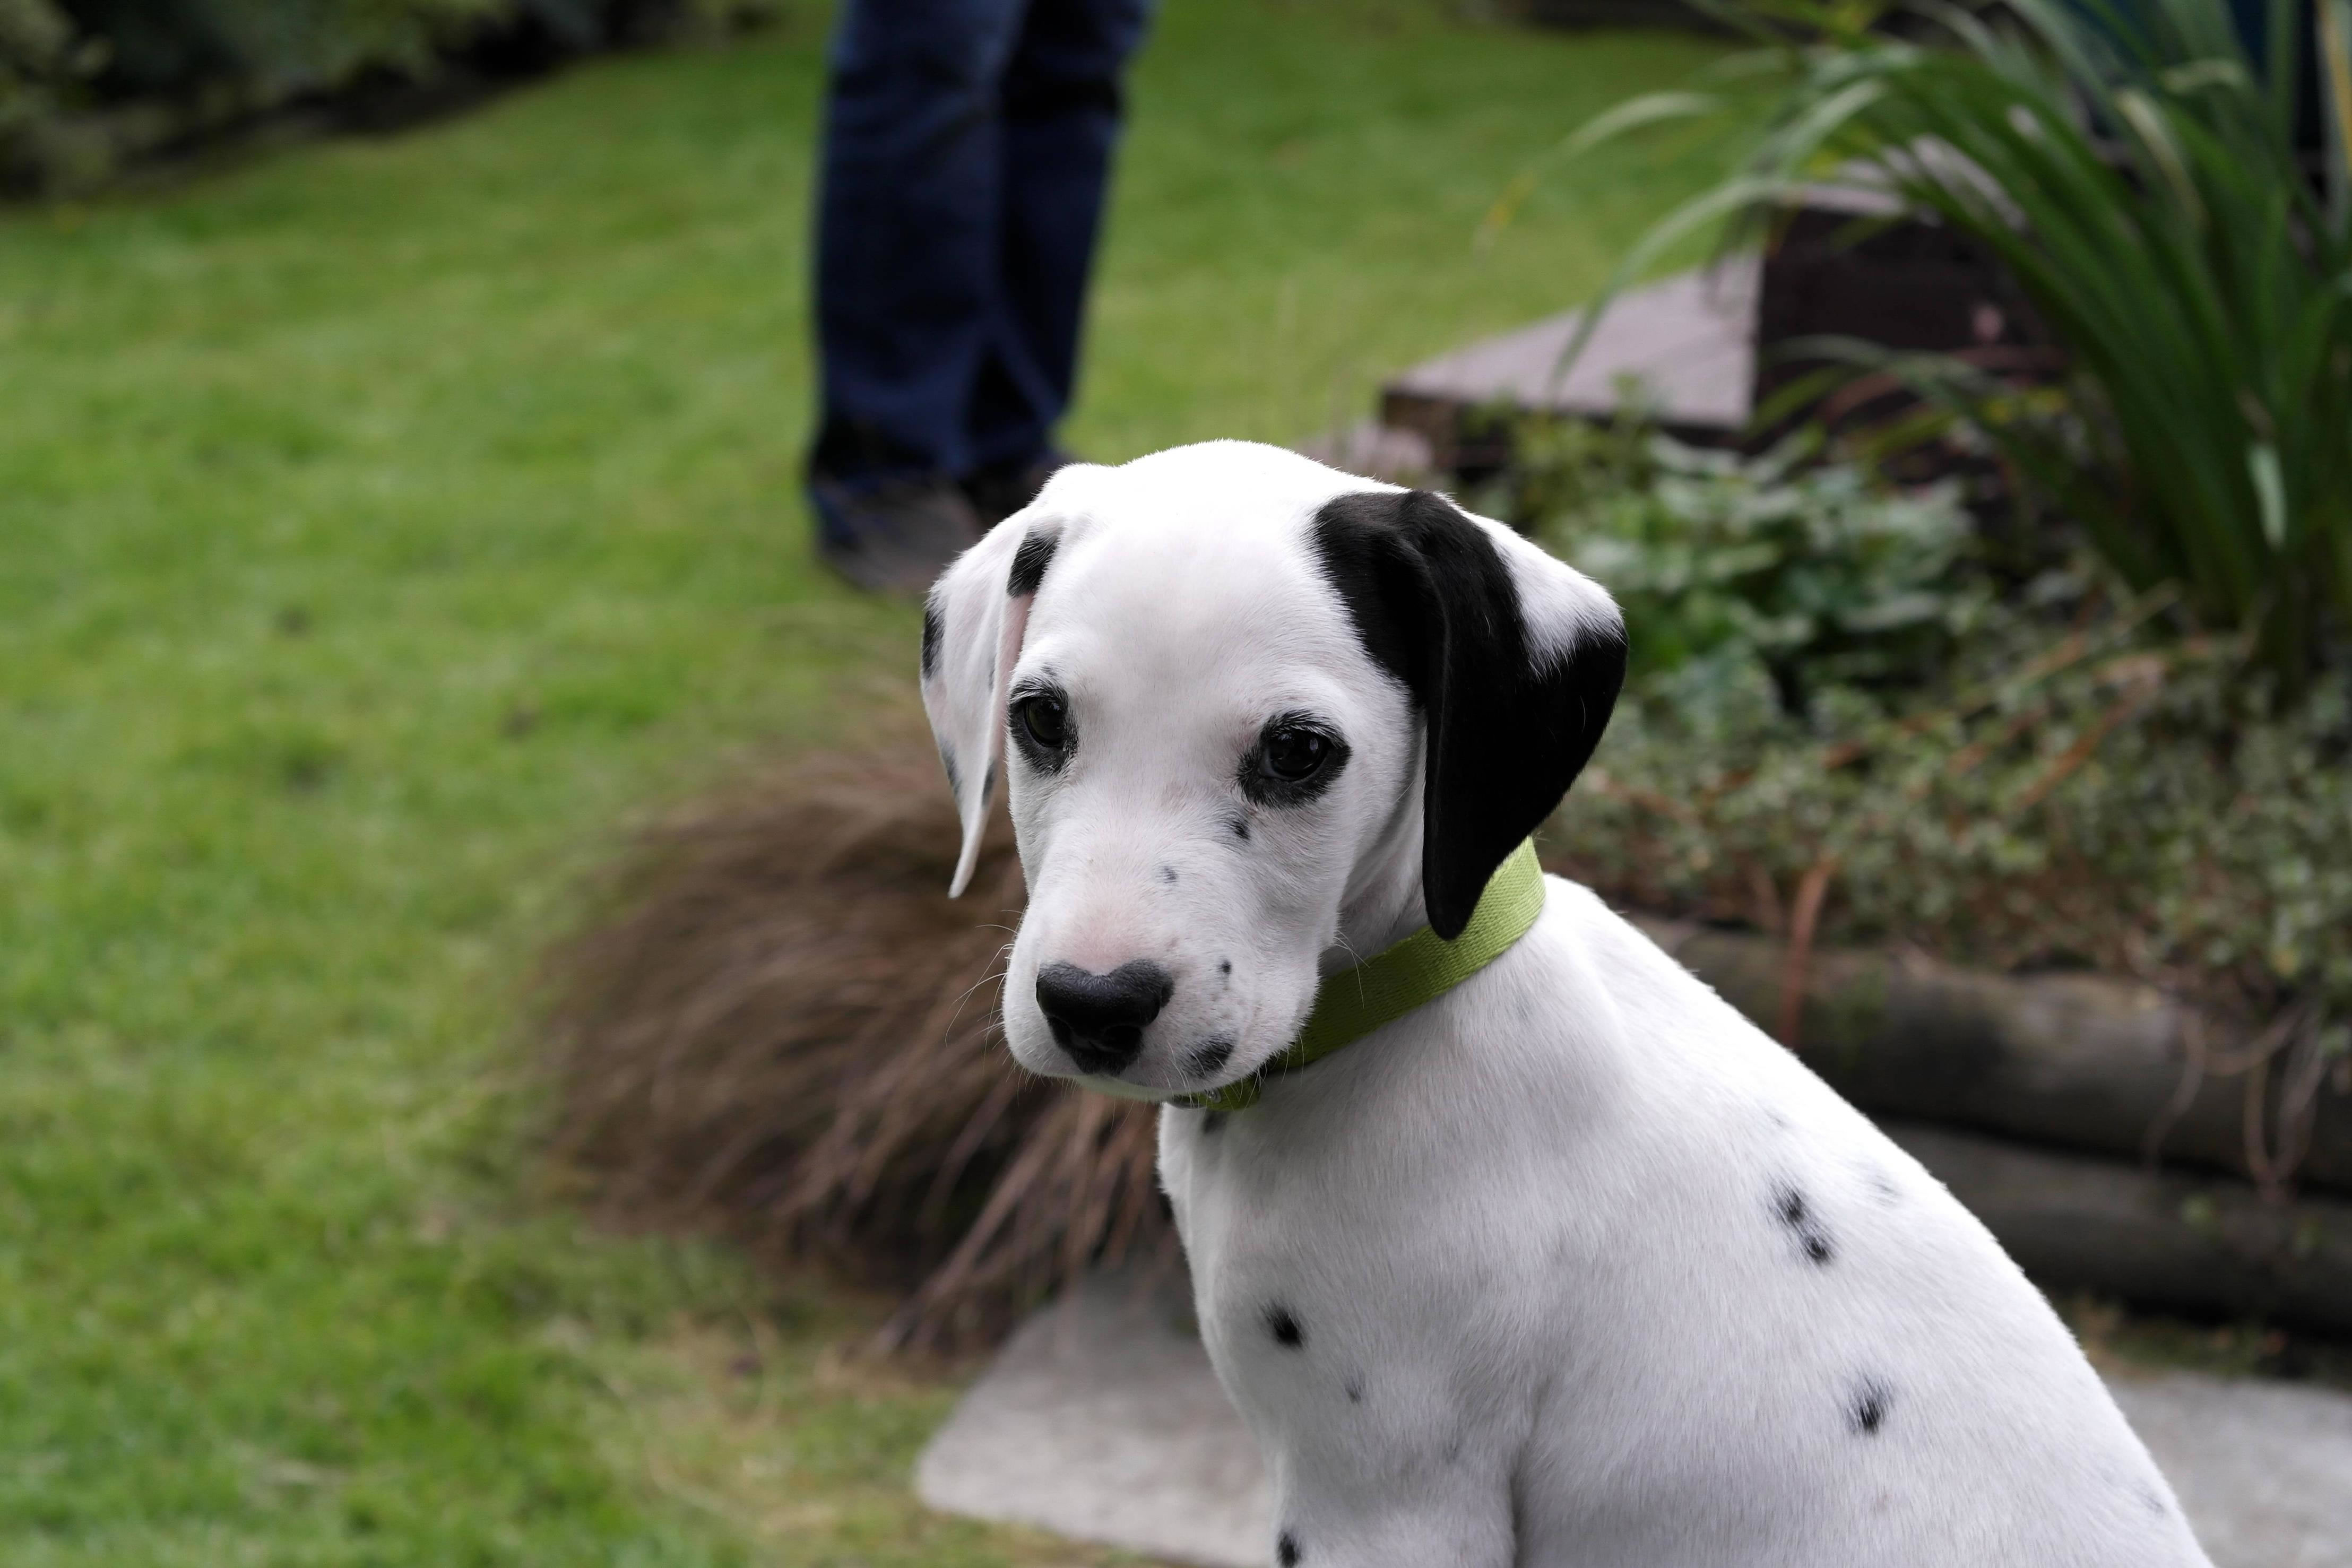 Wonderful White Chubby Adorable Dog - Adorable-Dalmatian-puppy  Collection_208146  .jpg